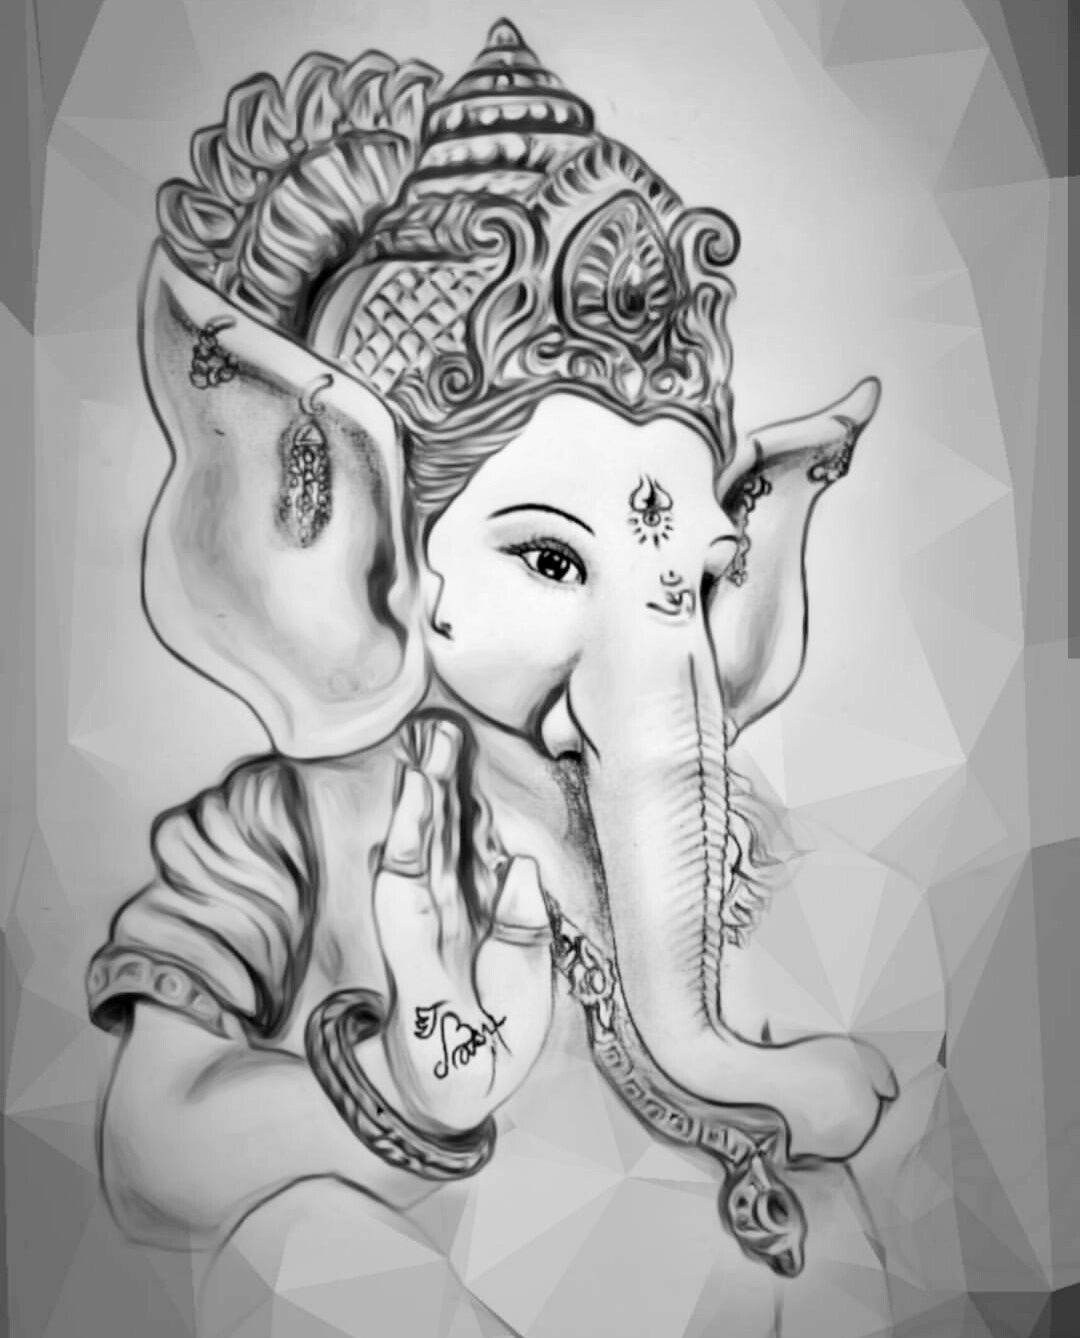 Shri ganesha pencil sketch